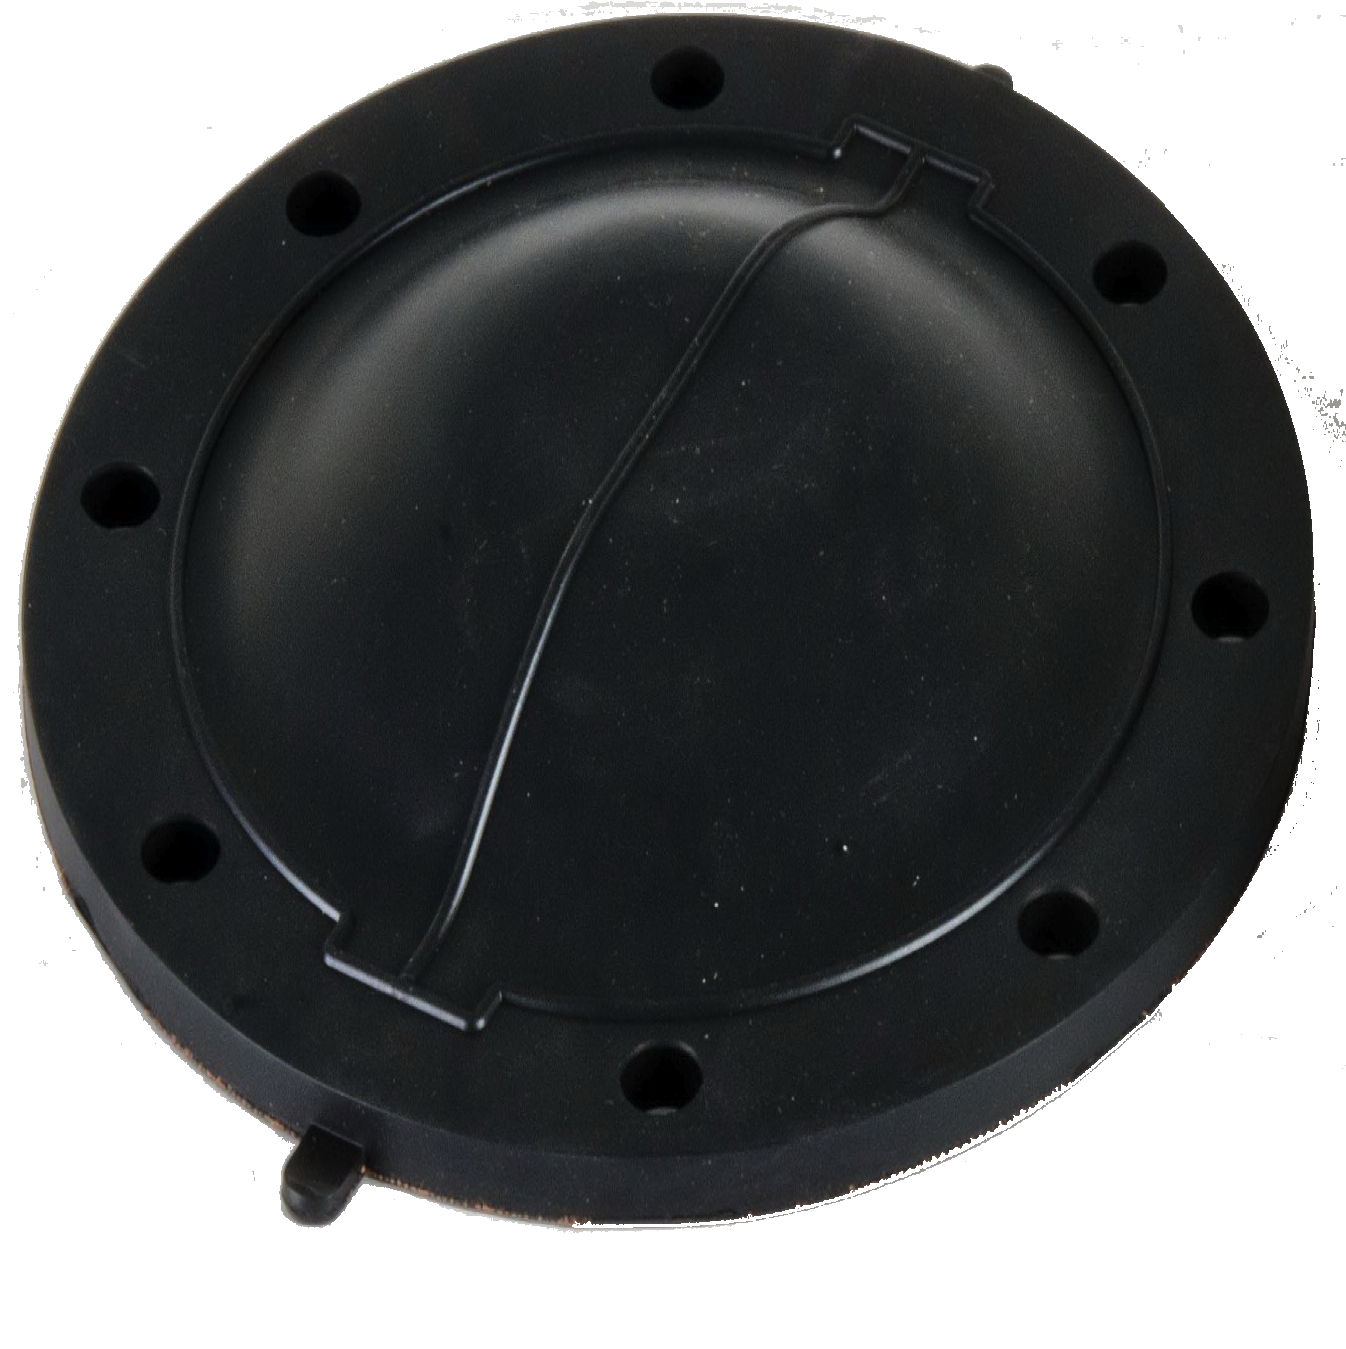 Black Fabric Reinforced Rubber (Rolling) Diaphragm, Rs 100 /number | ID:  11903197248